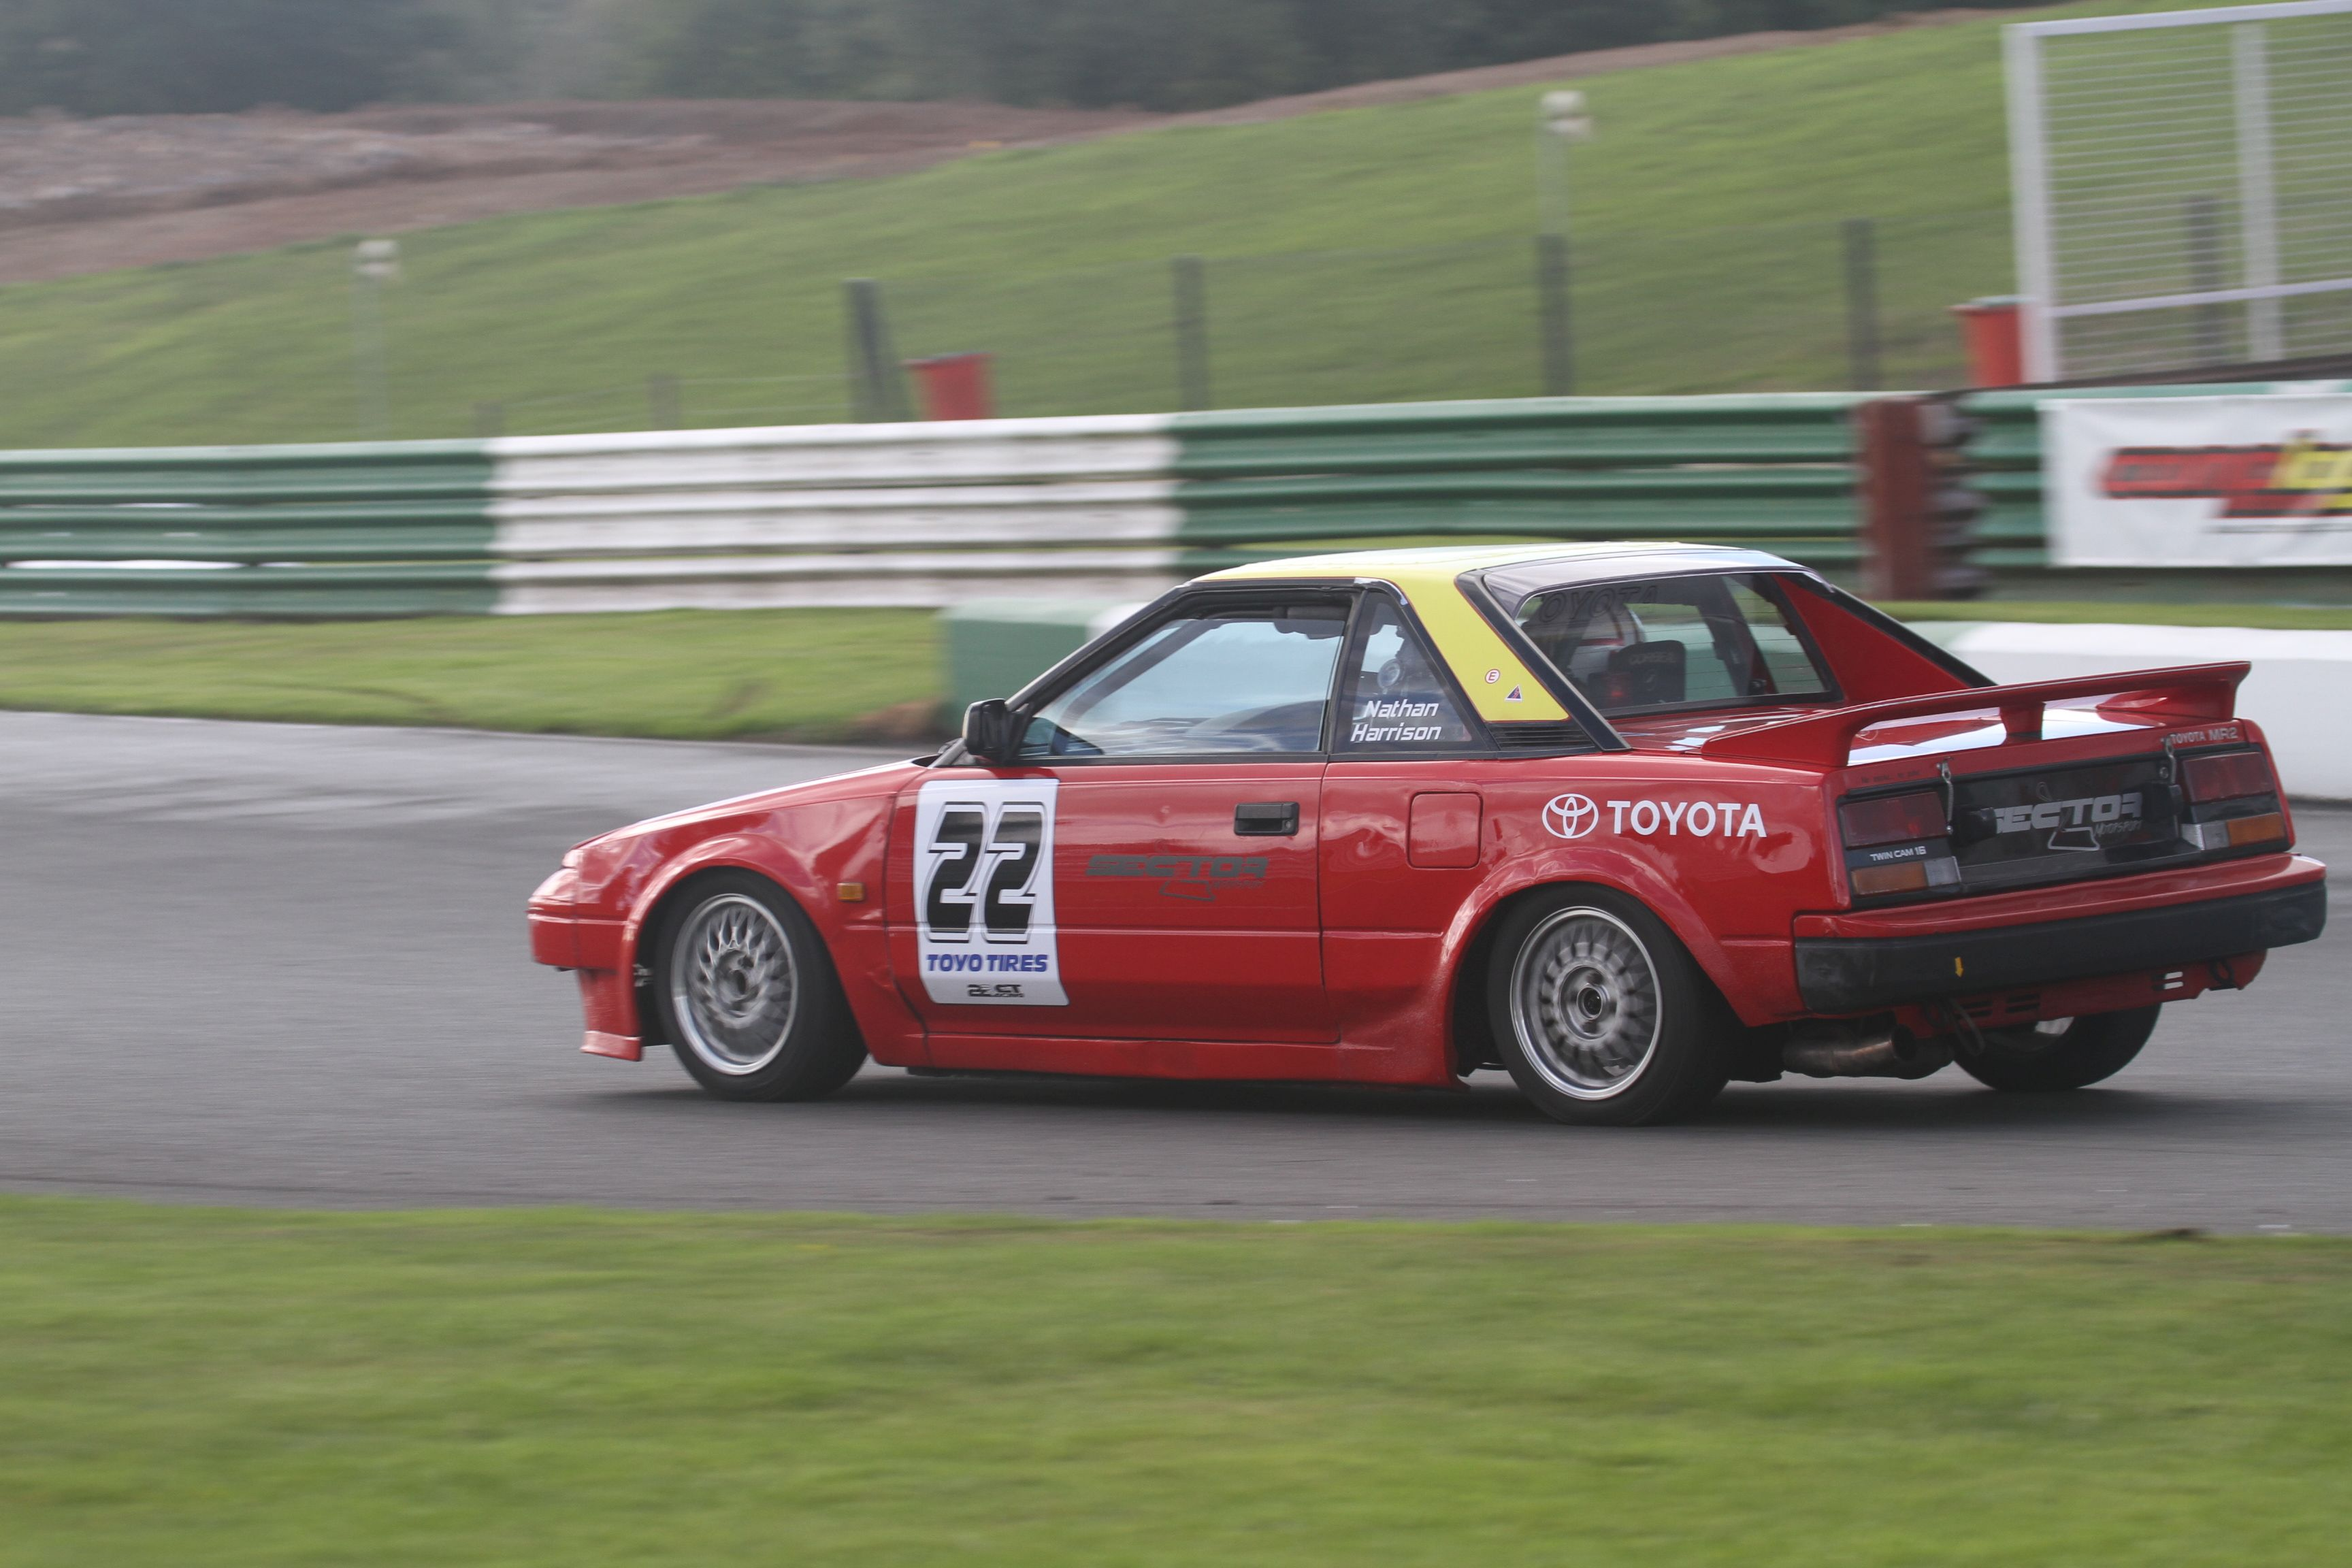 2013 Mallory MR2 Race 2 107_zpshrxrq05b